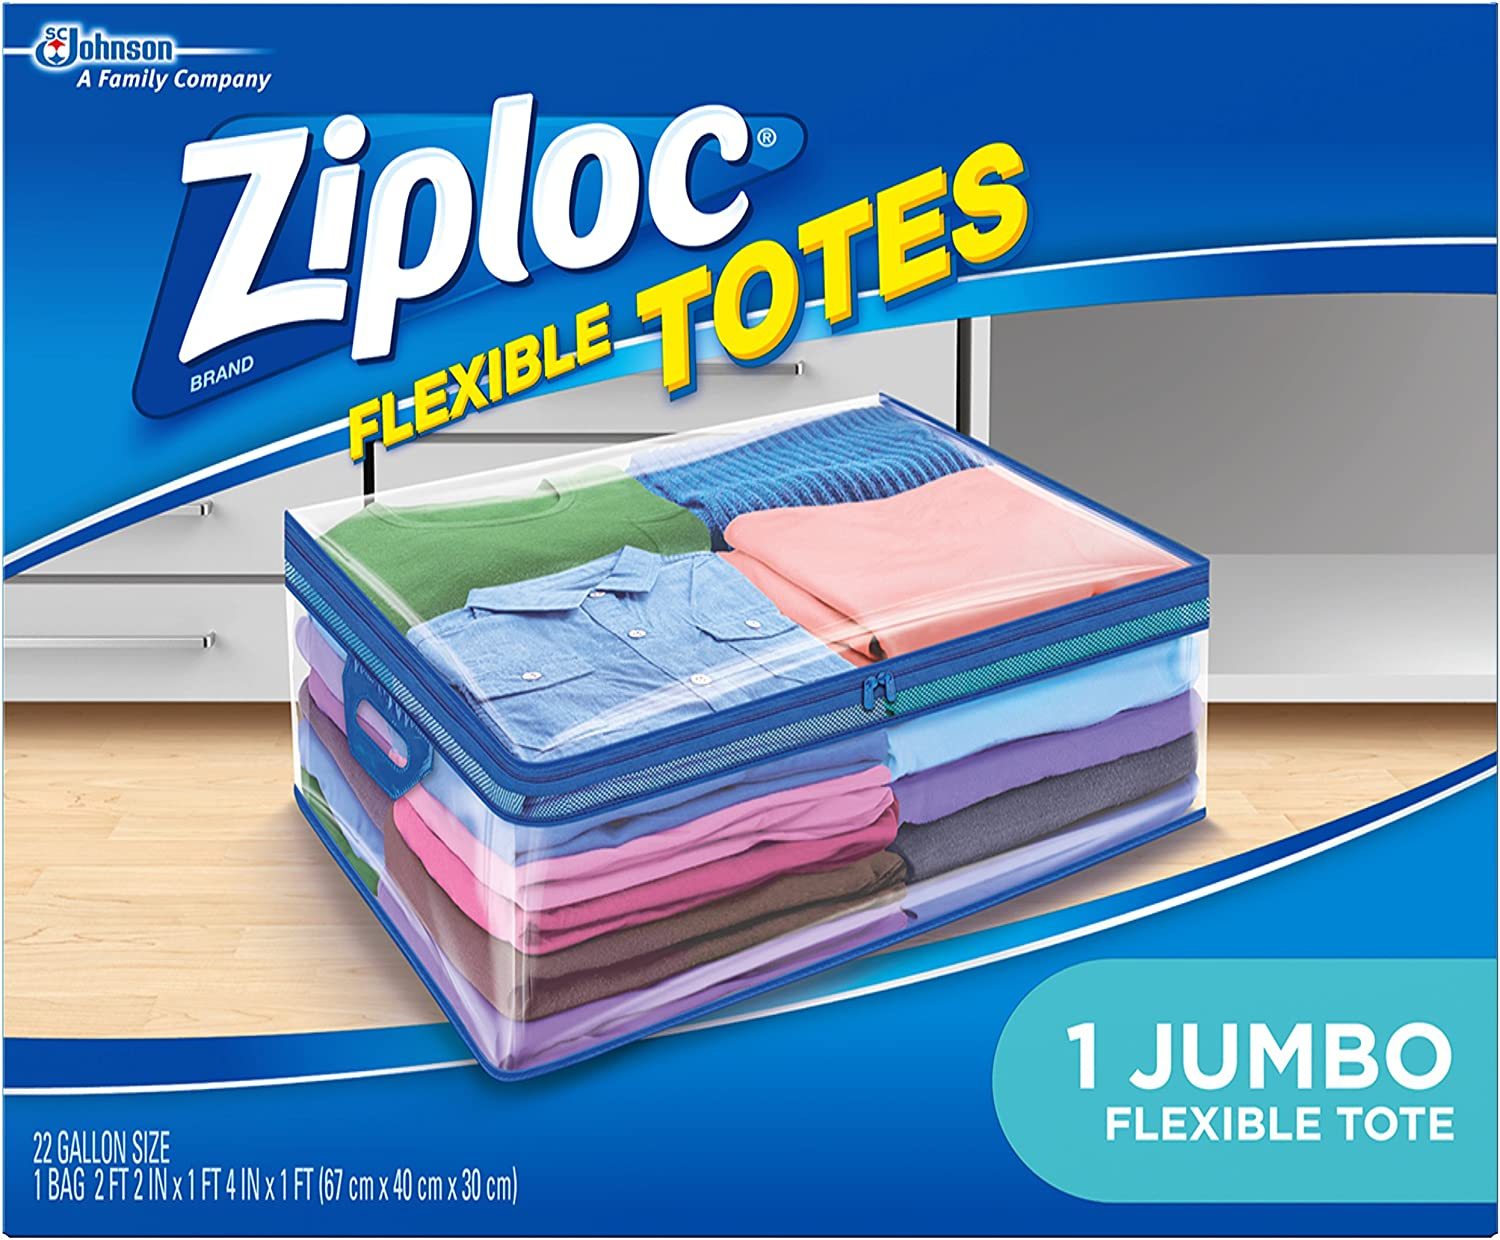 Ziploc Storage Bags for Clothes, Flexible Totes for Easy and Convenient Storage, 1 Jumbo Bag: Health & Personal Care